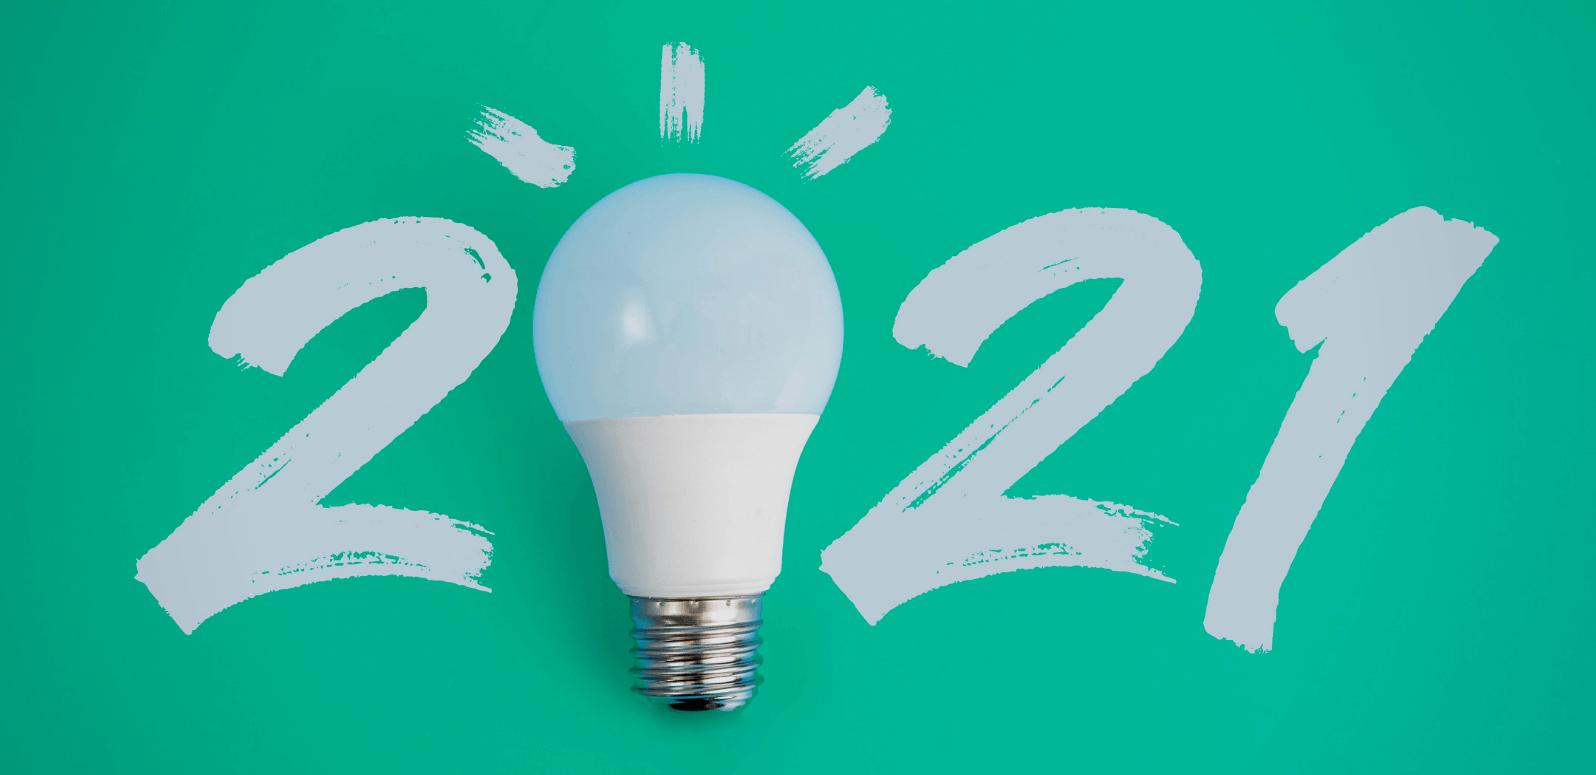 The Aftermath: 6 Real Estate Pros Weigh in on Trends for 2021